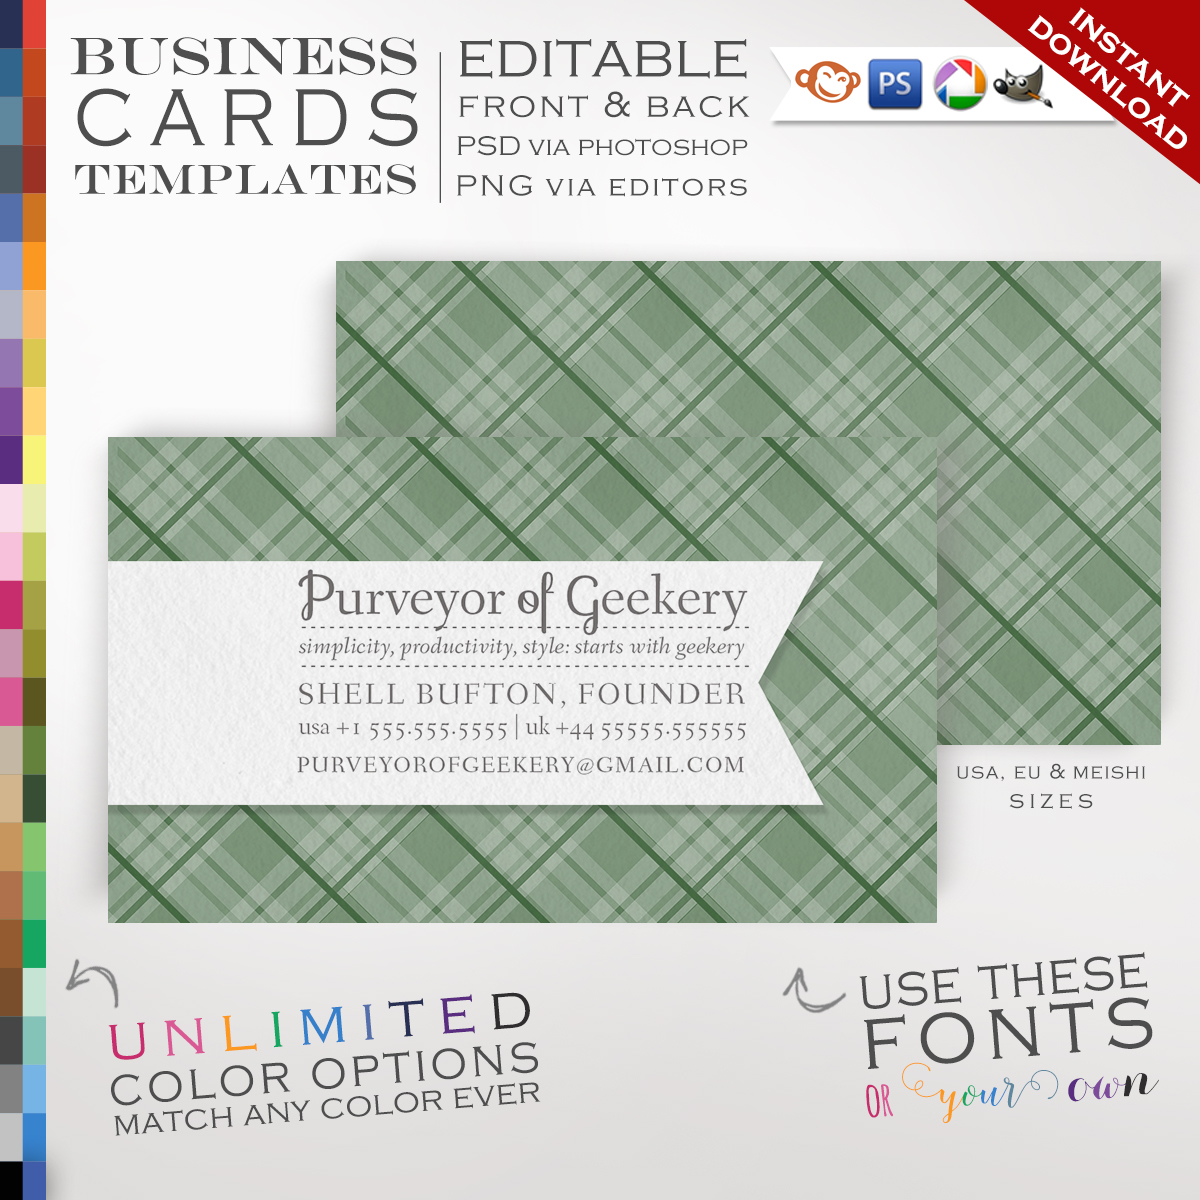 Premade plaid business cards customizable color ribbon design premade plaid business cards customizable color ribbon design double sided rbpl photoshop or free editor template faire reheart Image collections